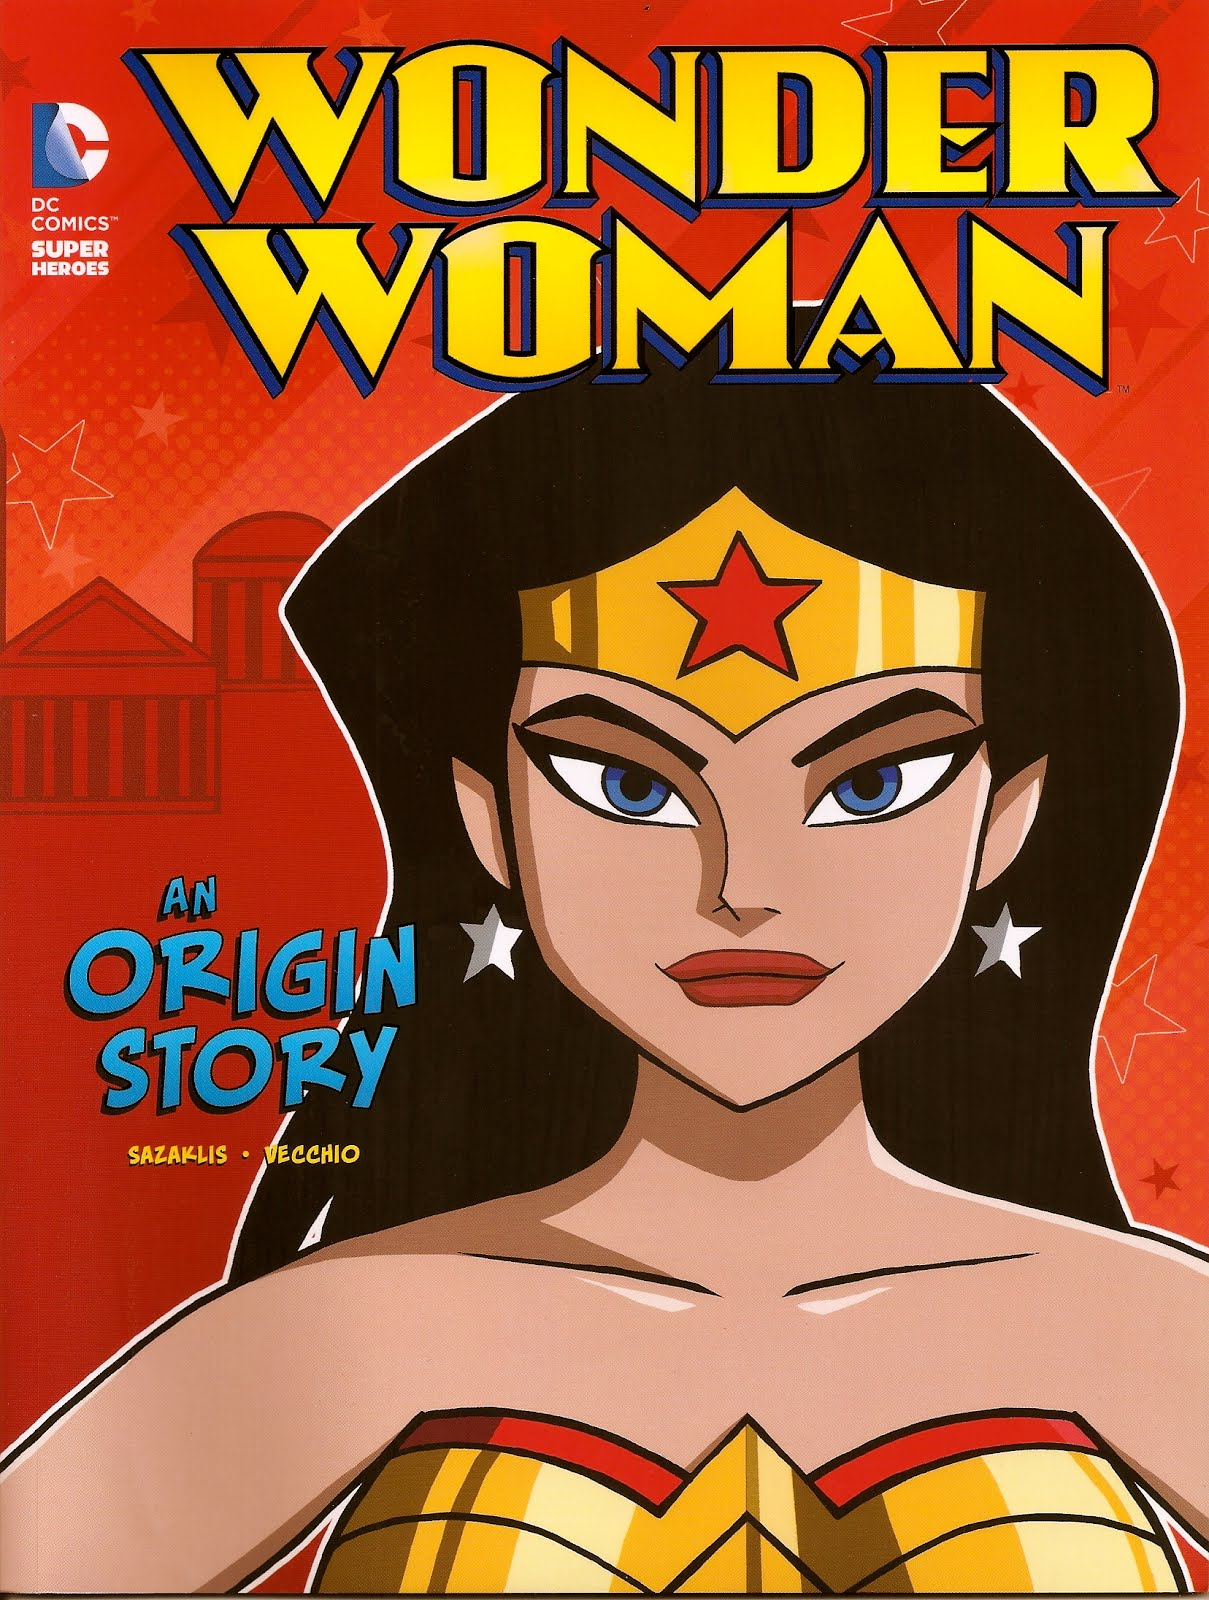 Wonder Woman: An Origin Story by John Sazakalis and Luciano Vecchio